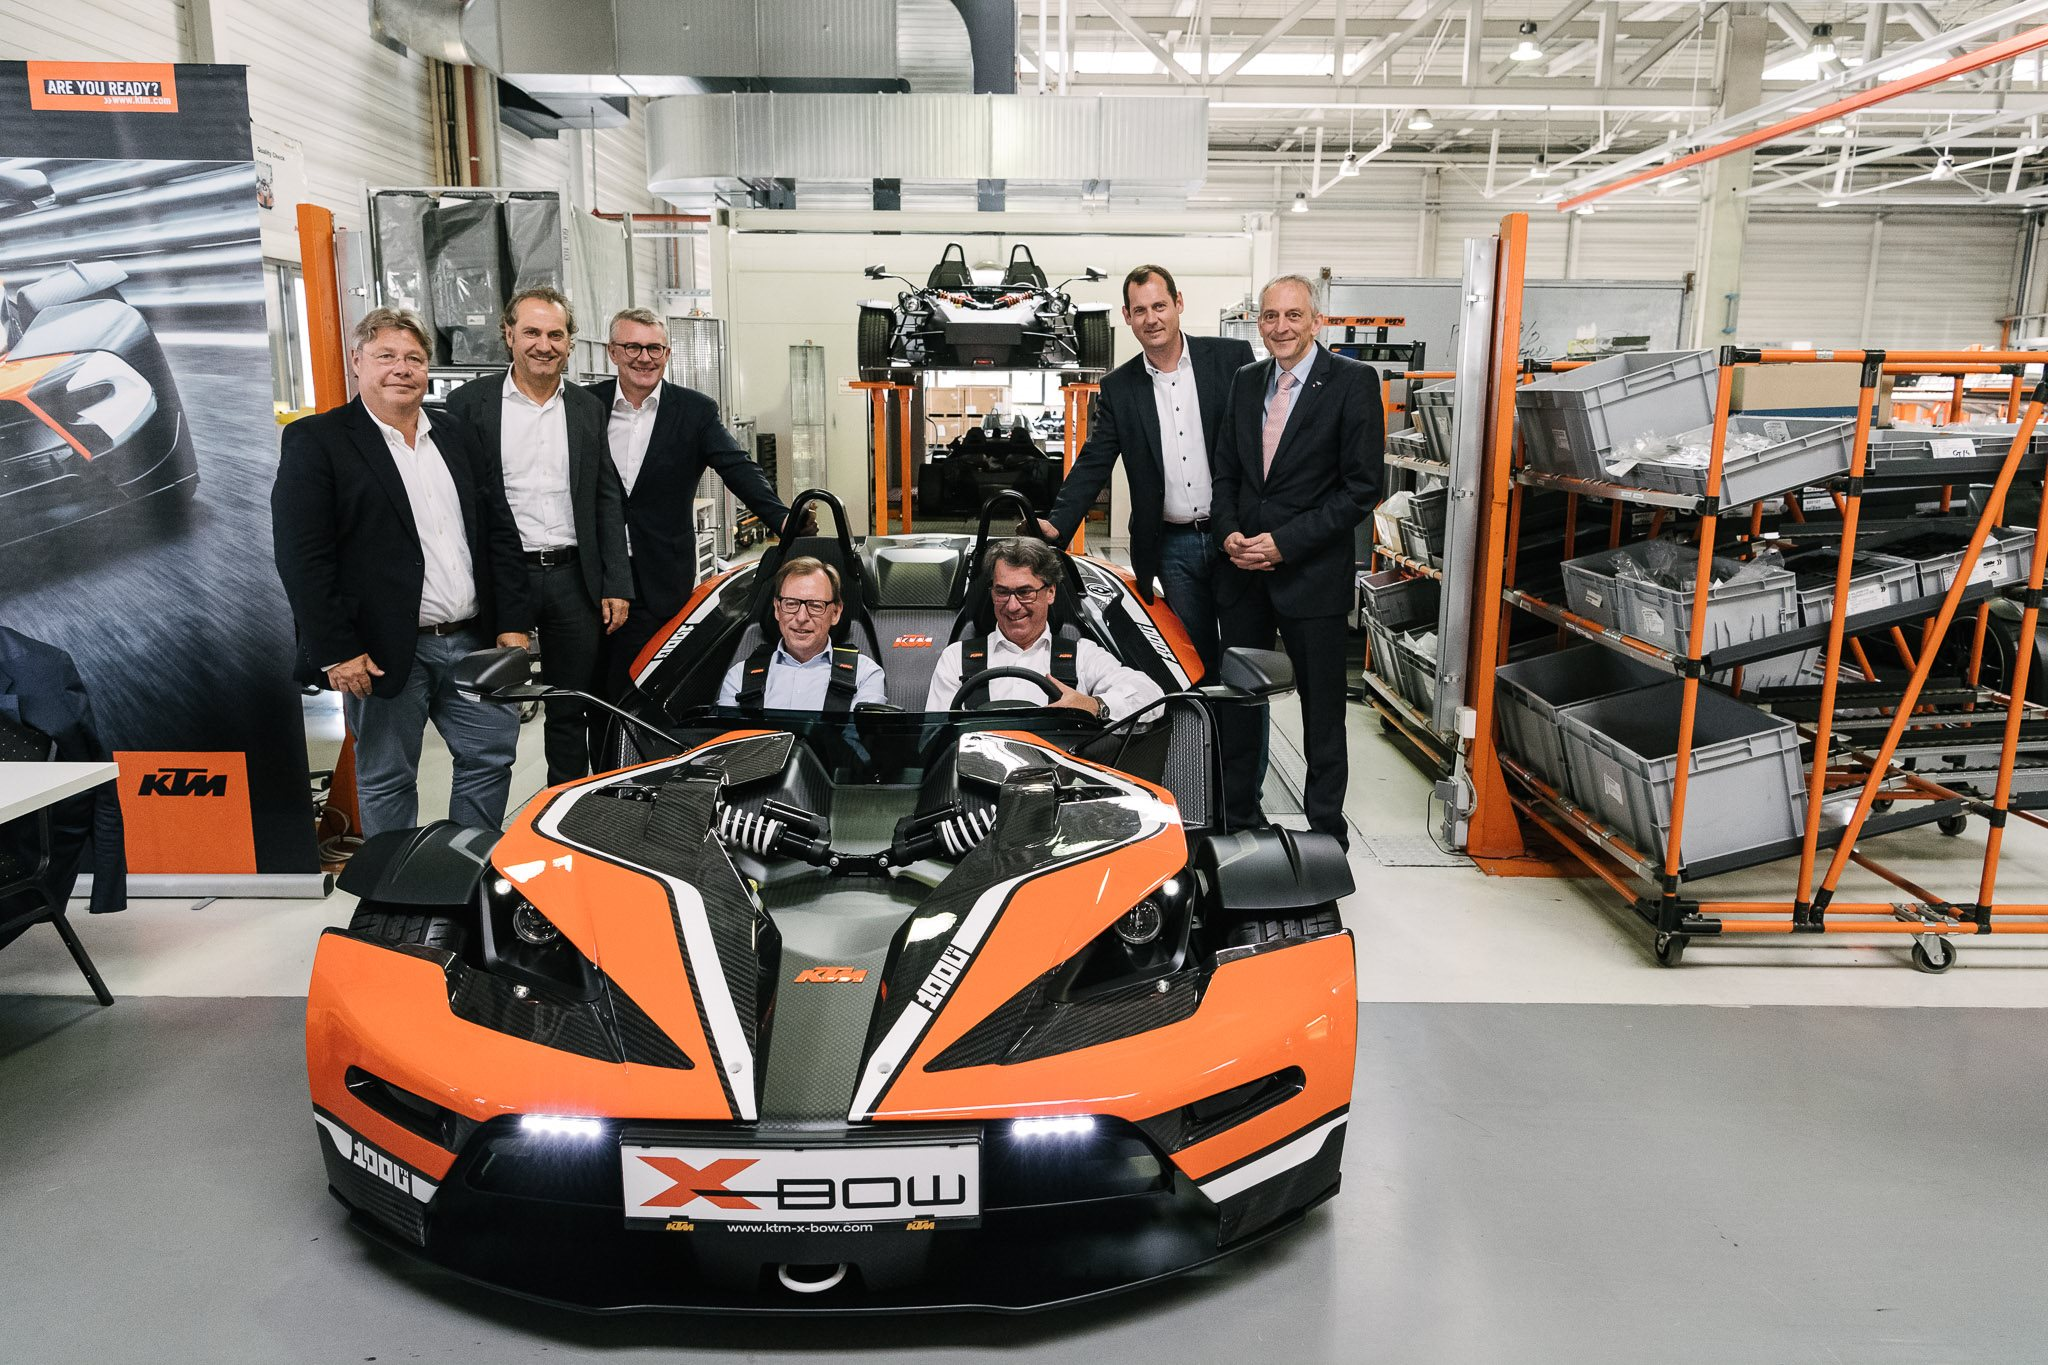 fertigstellung des ktm x bow motorrad news. Black Bedroom Furniture Sets. Home Design Ideas